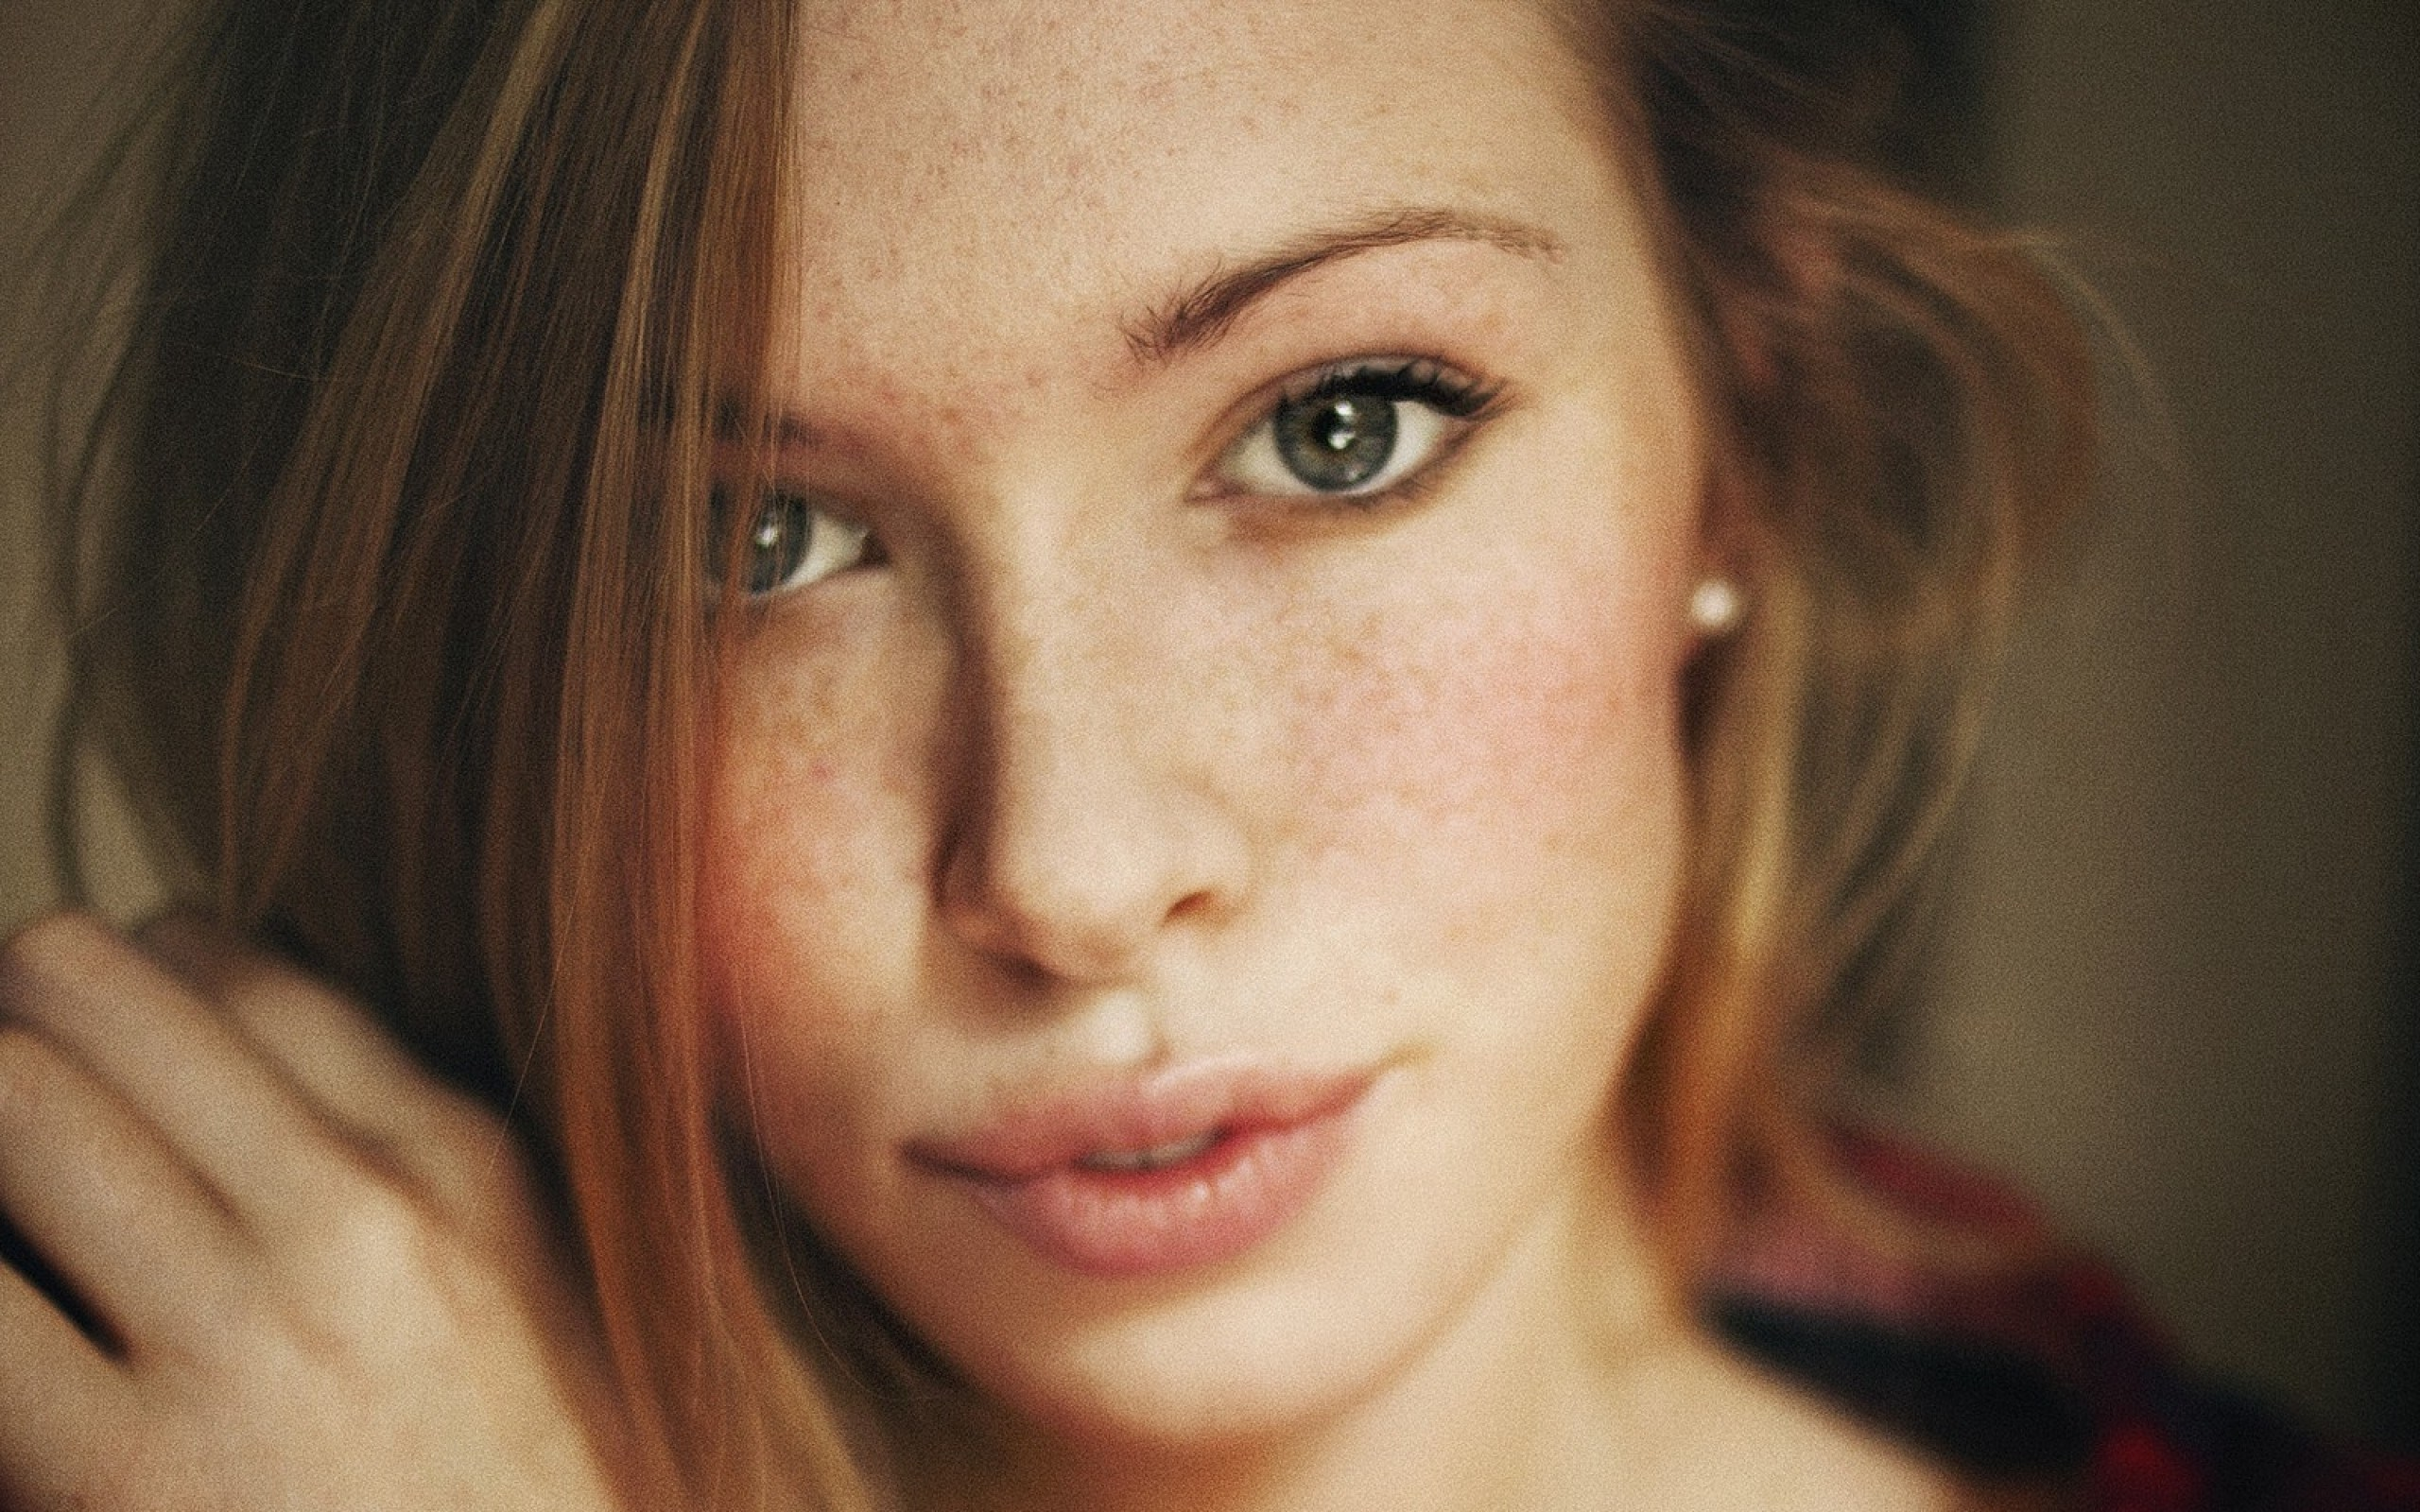 Freckled Girls Wallpaper